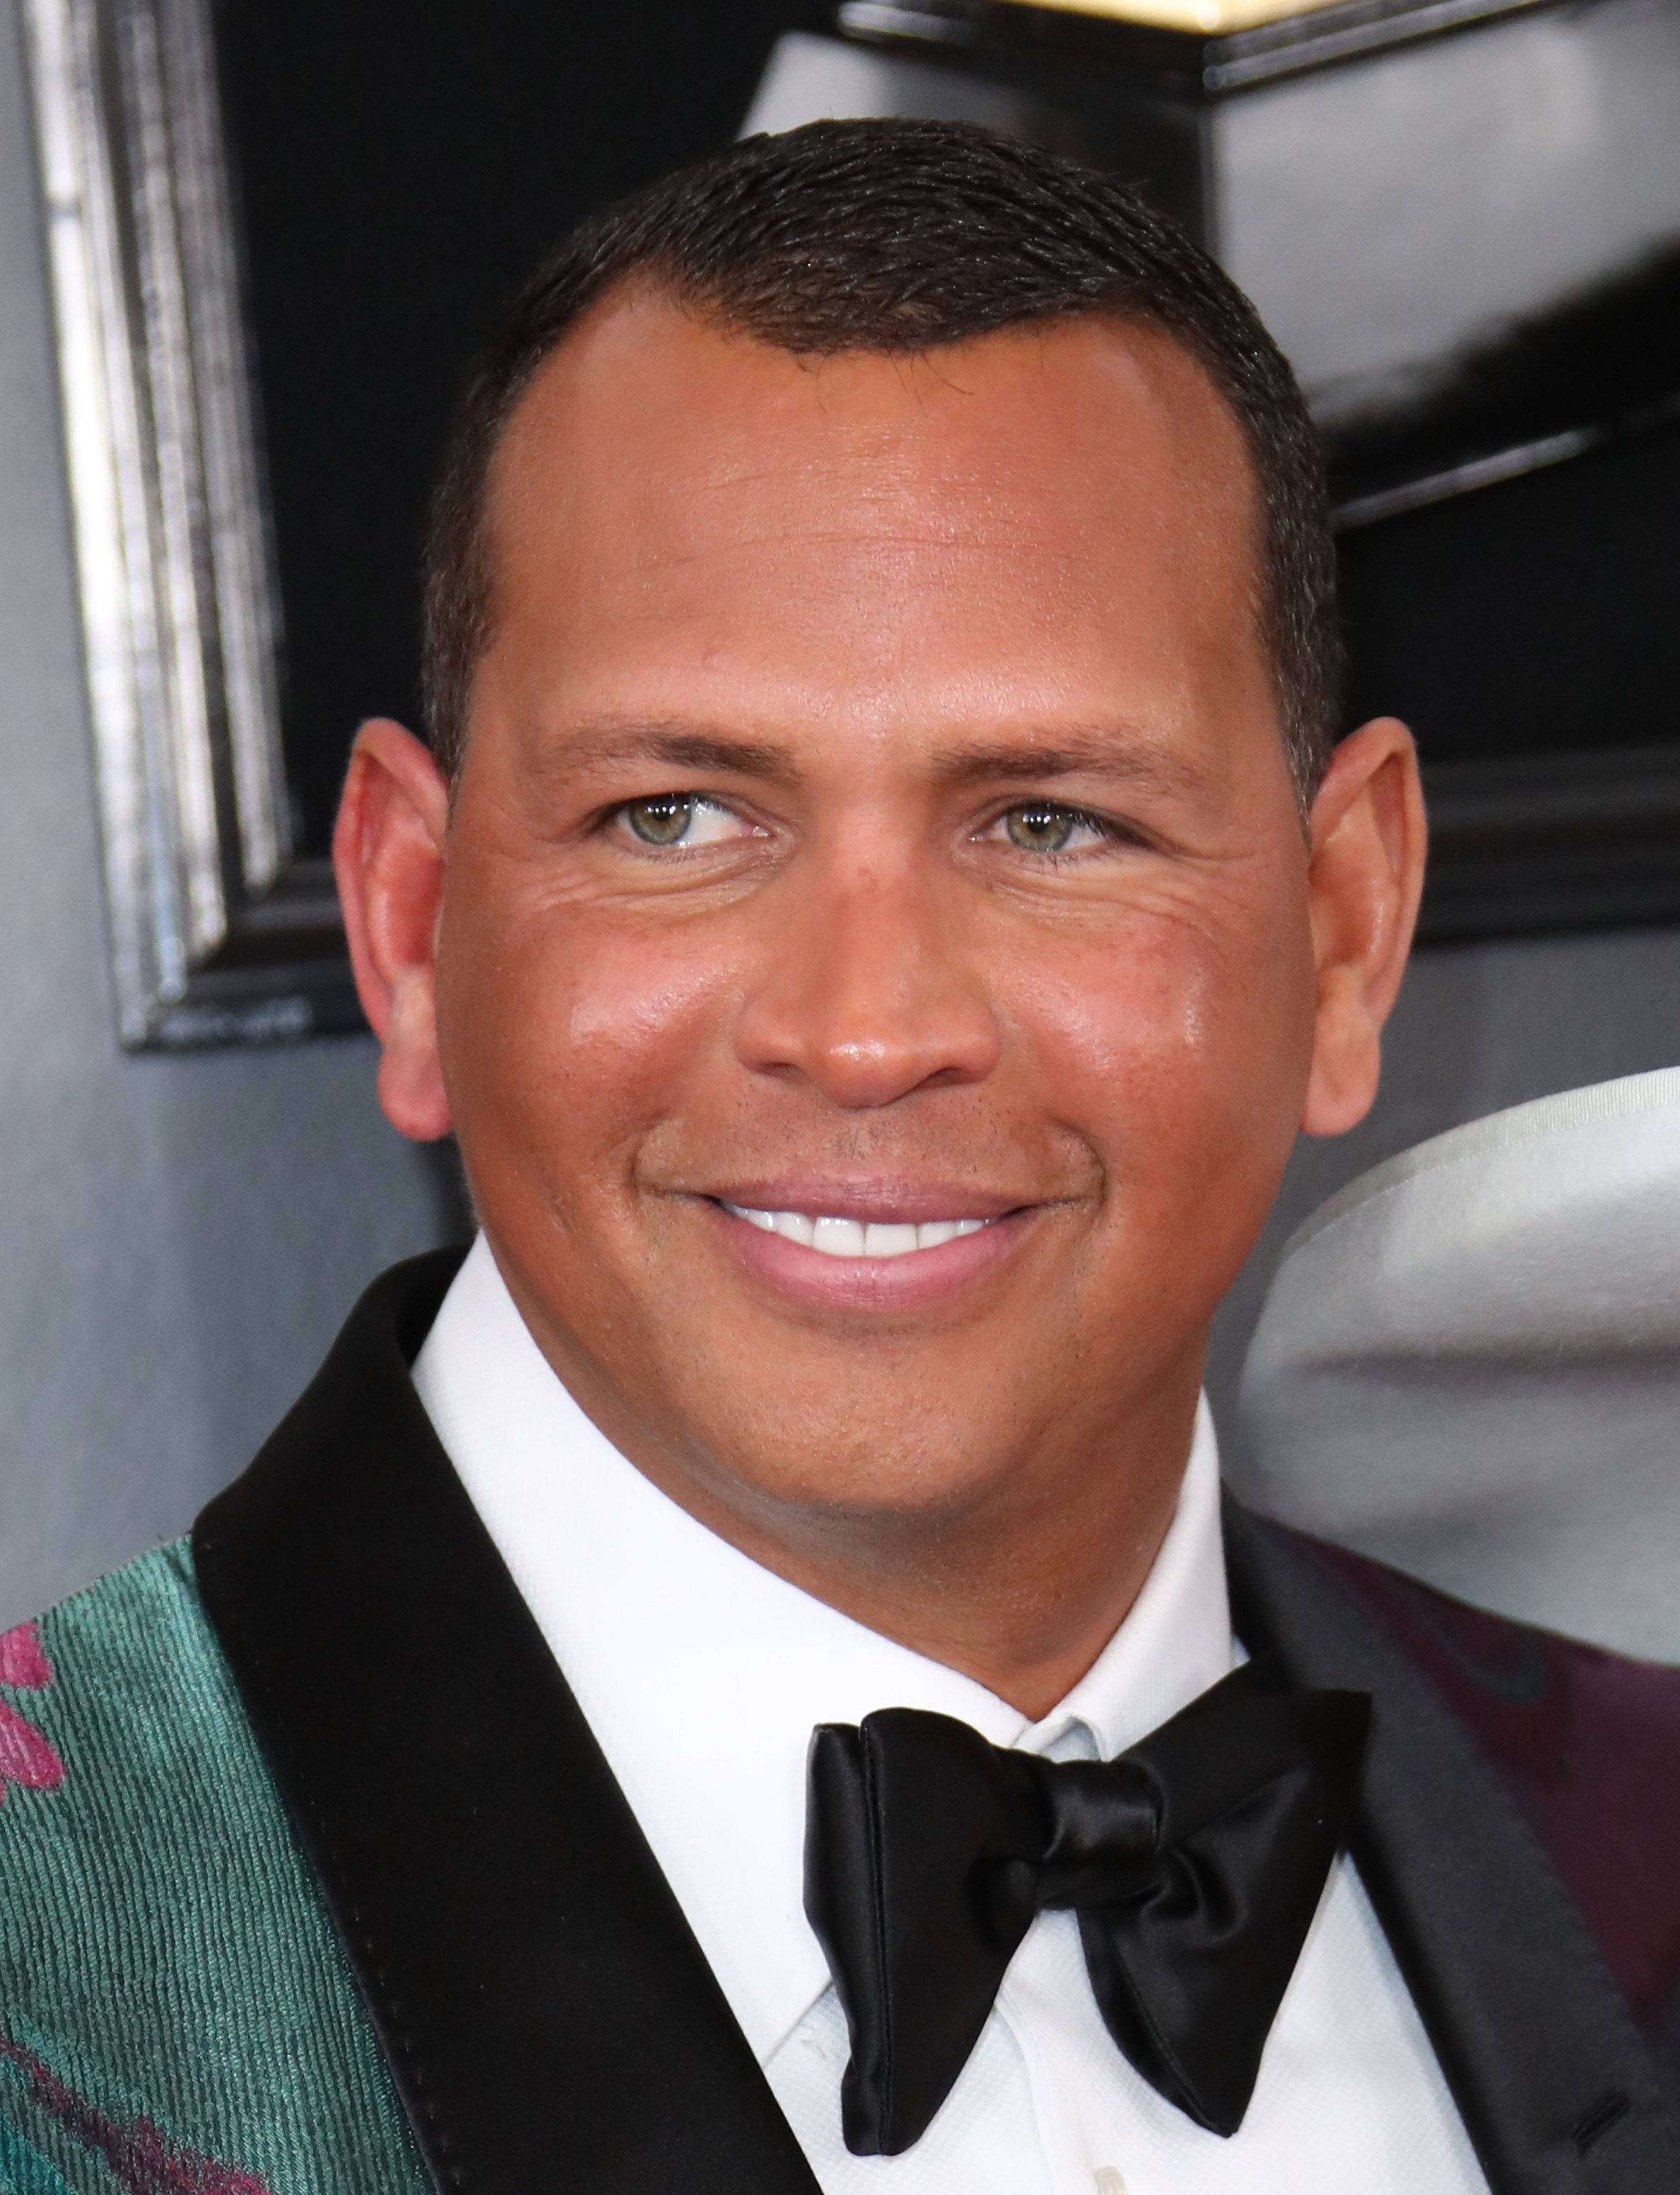 Alex Rodriguez on February 10, 2019 in Los Angeles, California | Source: Getty Images